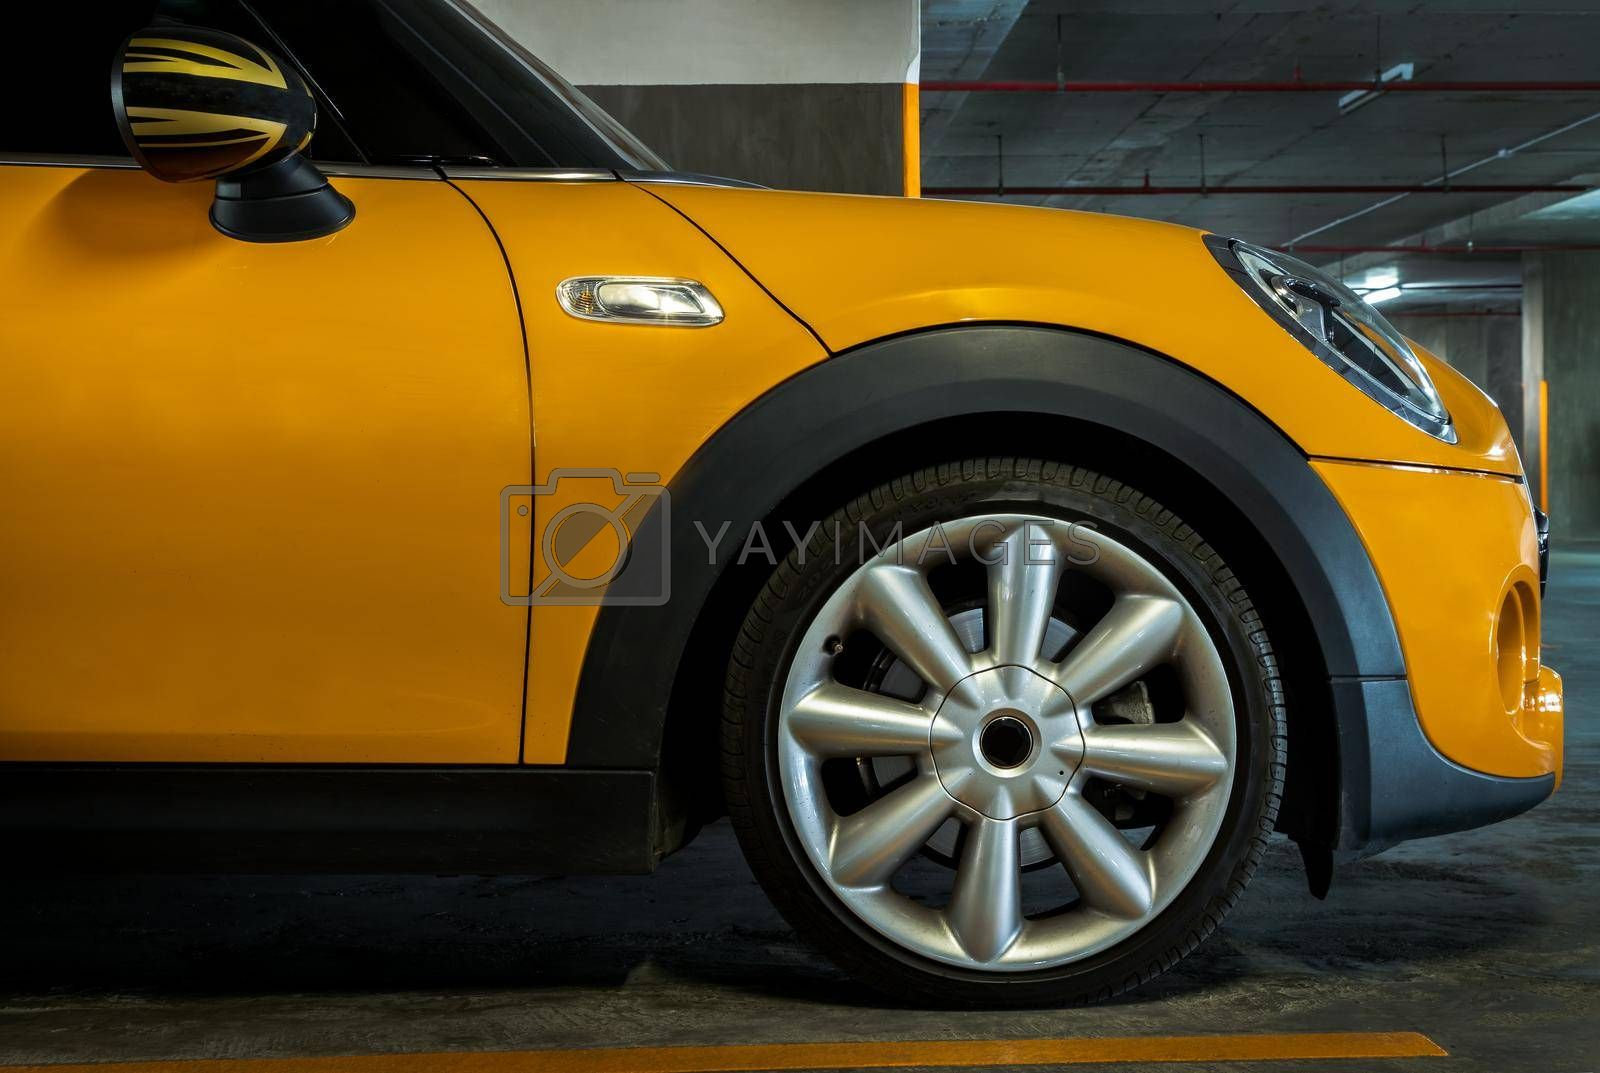 Bangkok, Thailand - 27 May 2021 : Side view of Headlights, Wheel, Hood, Sidelights and Side view mirror of Yellow car. Selective focus.